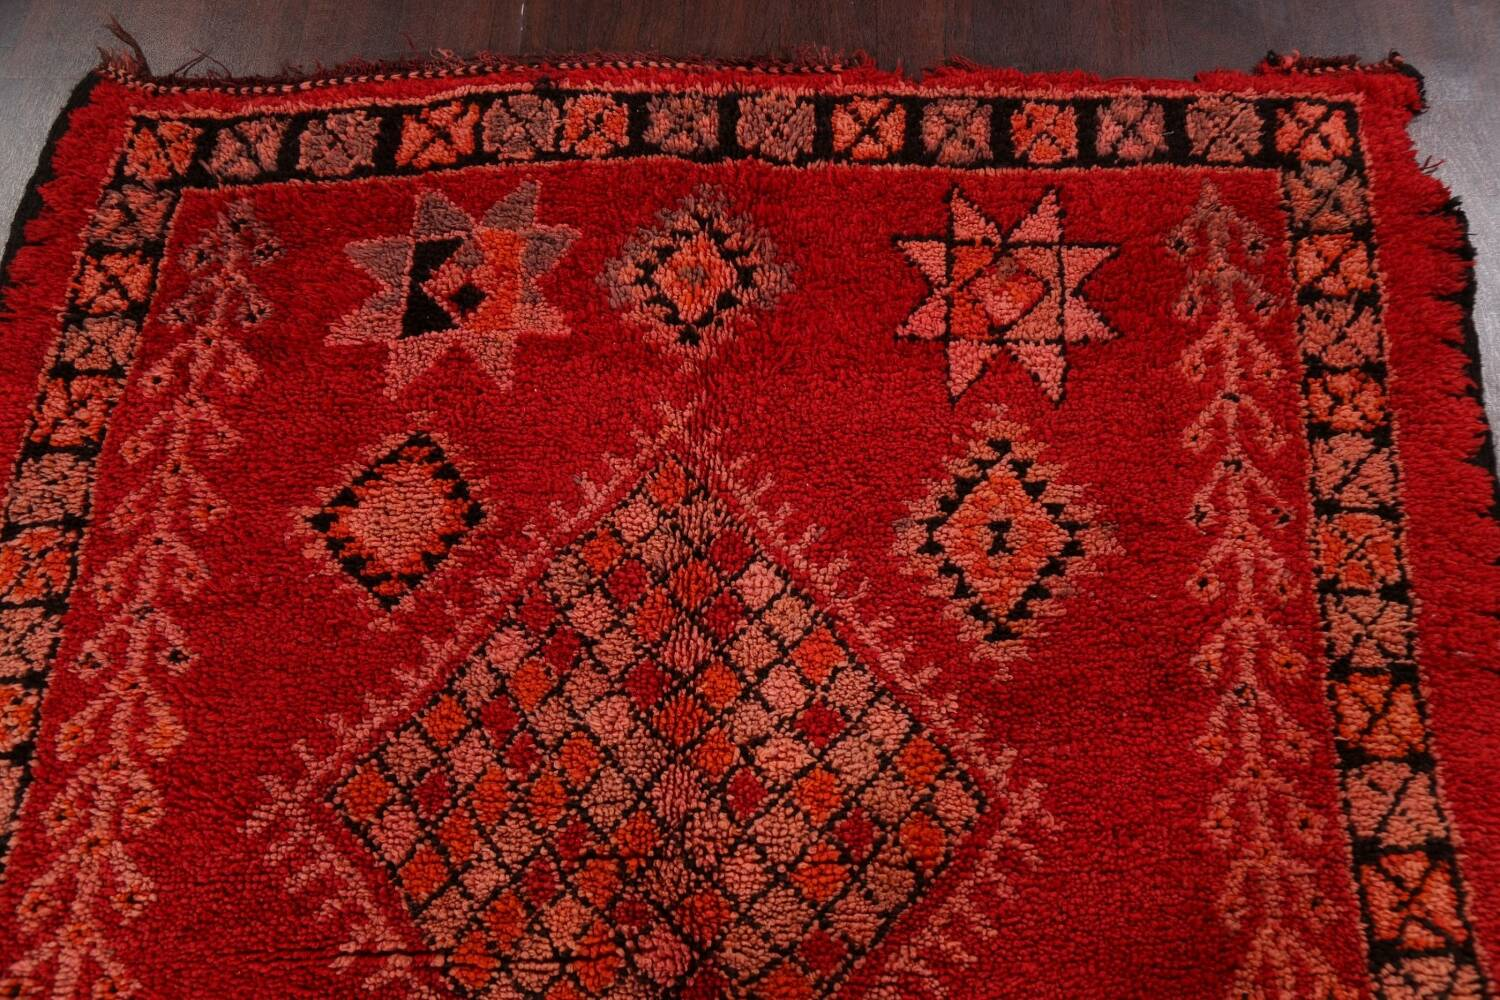 Red Moroccan Berber Area Rug 6x11 image 17